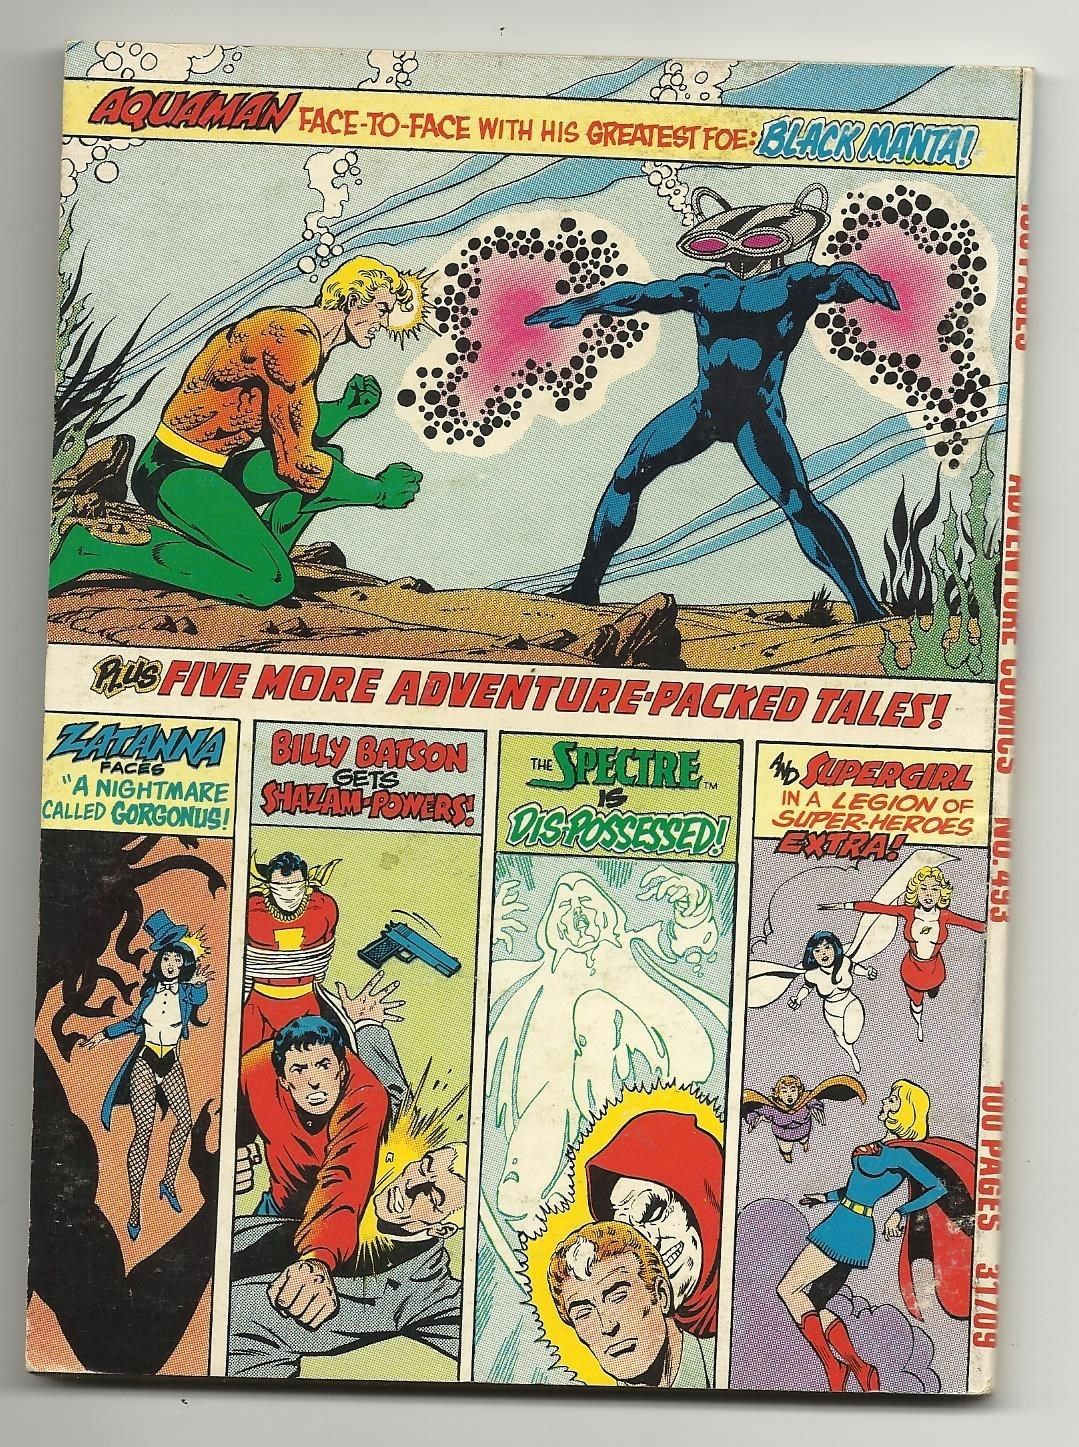 Adventure Comics #493 - Challengers of the Unknown Zatanna Spectre & MORE image 2